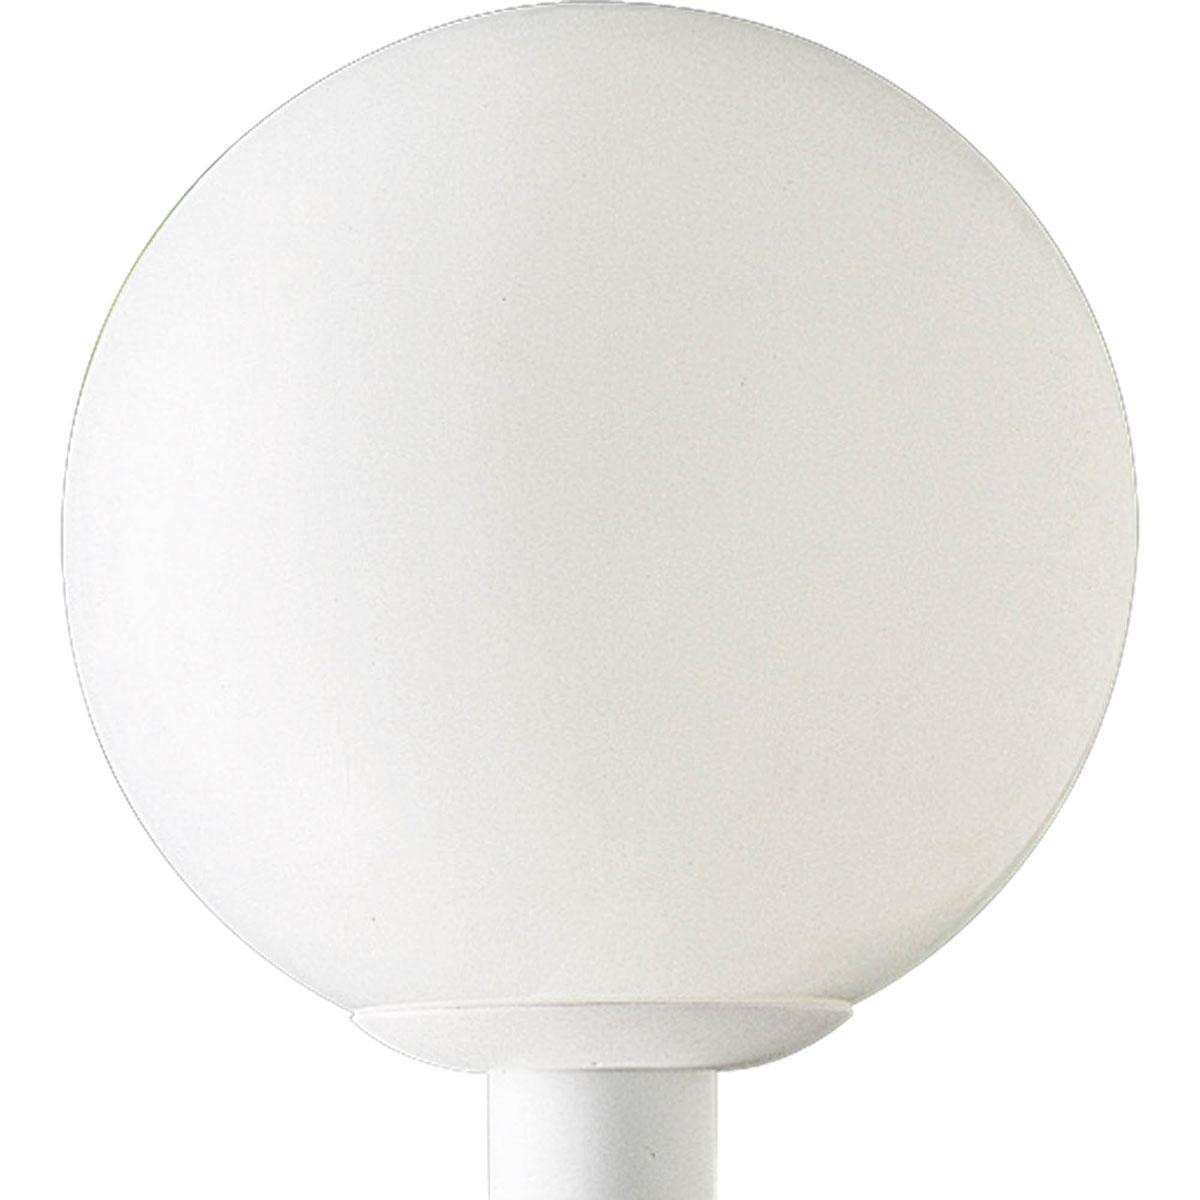 Progress P5426-60 One-light post lantern in White finish with opal white acrylic glass.